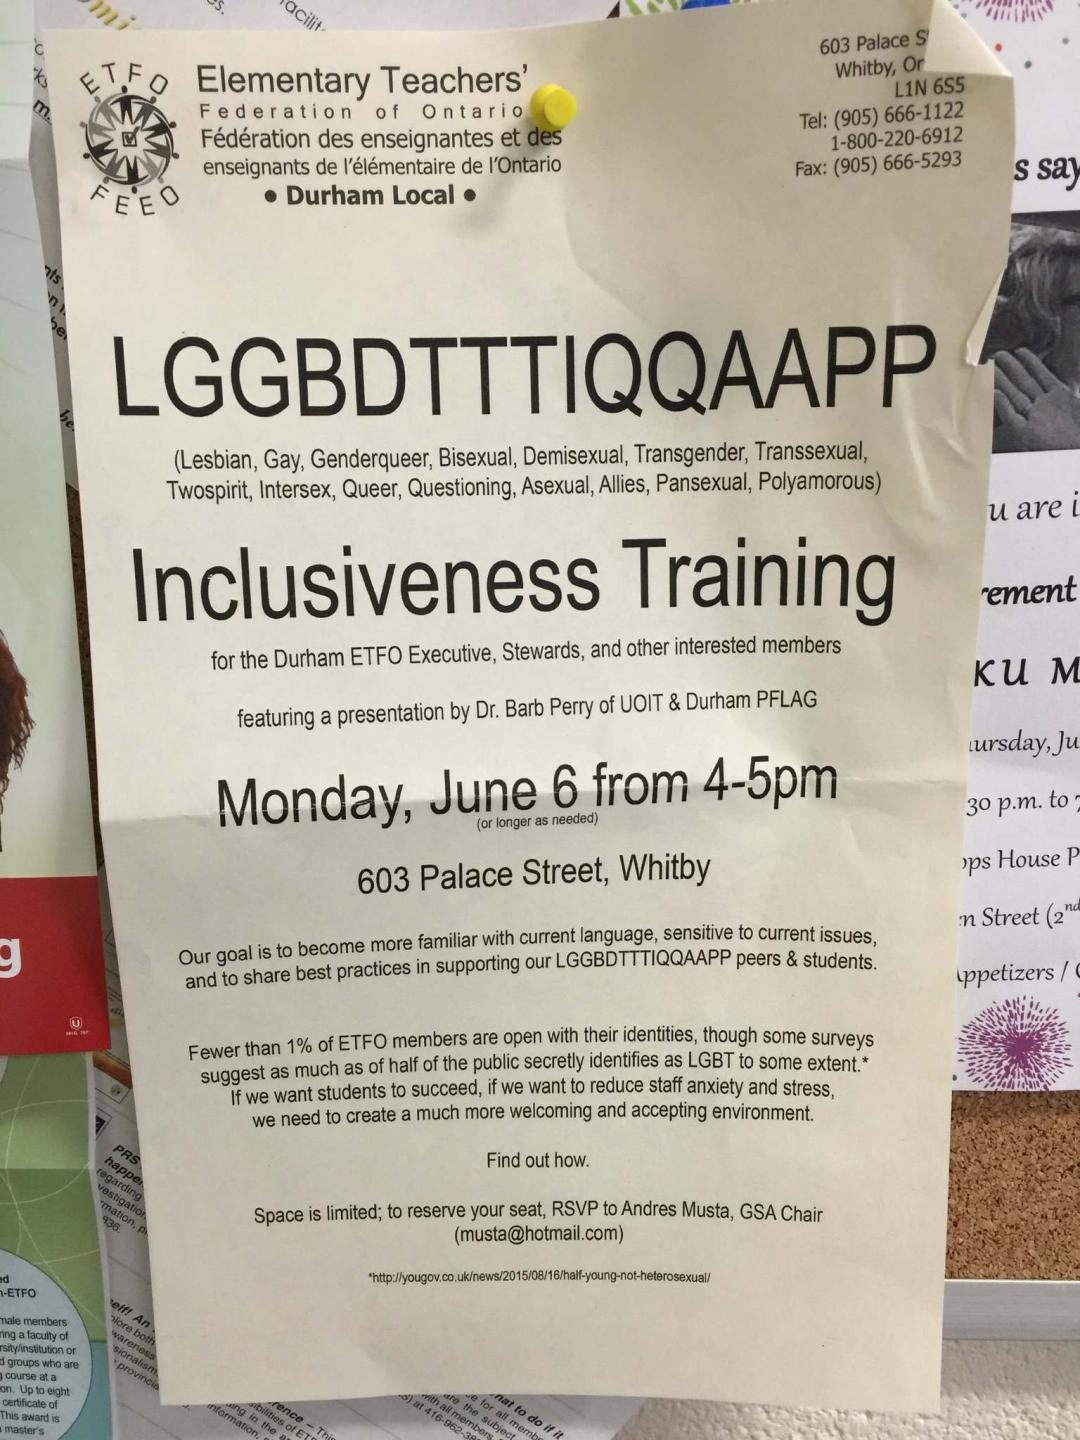 Is This Lggbdtttiqqaapp Inclusiveness Training Session Flyer Real